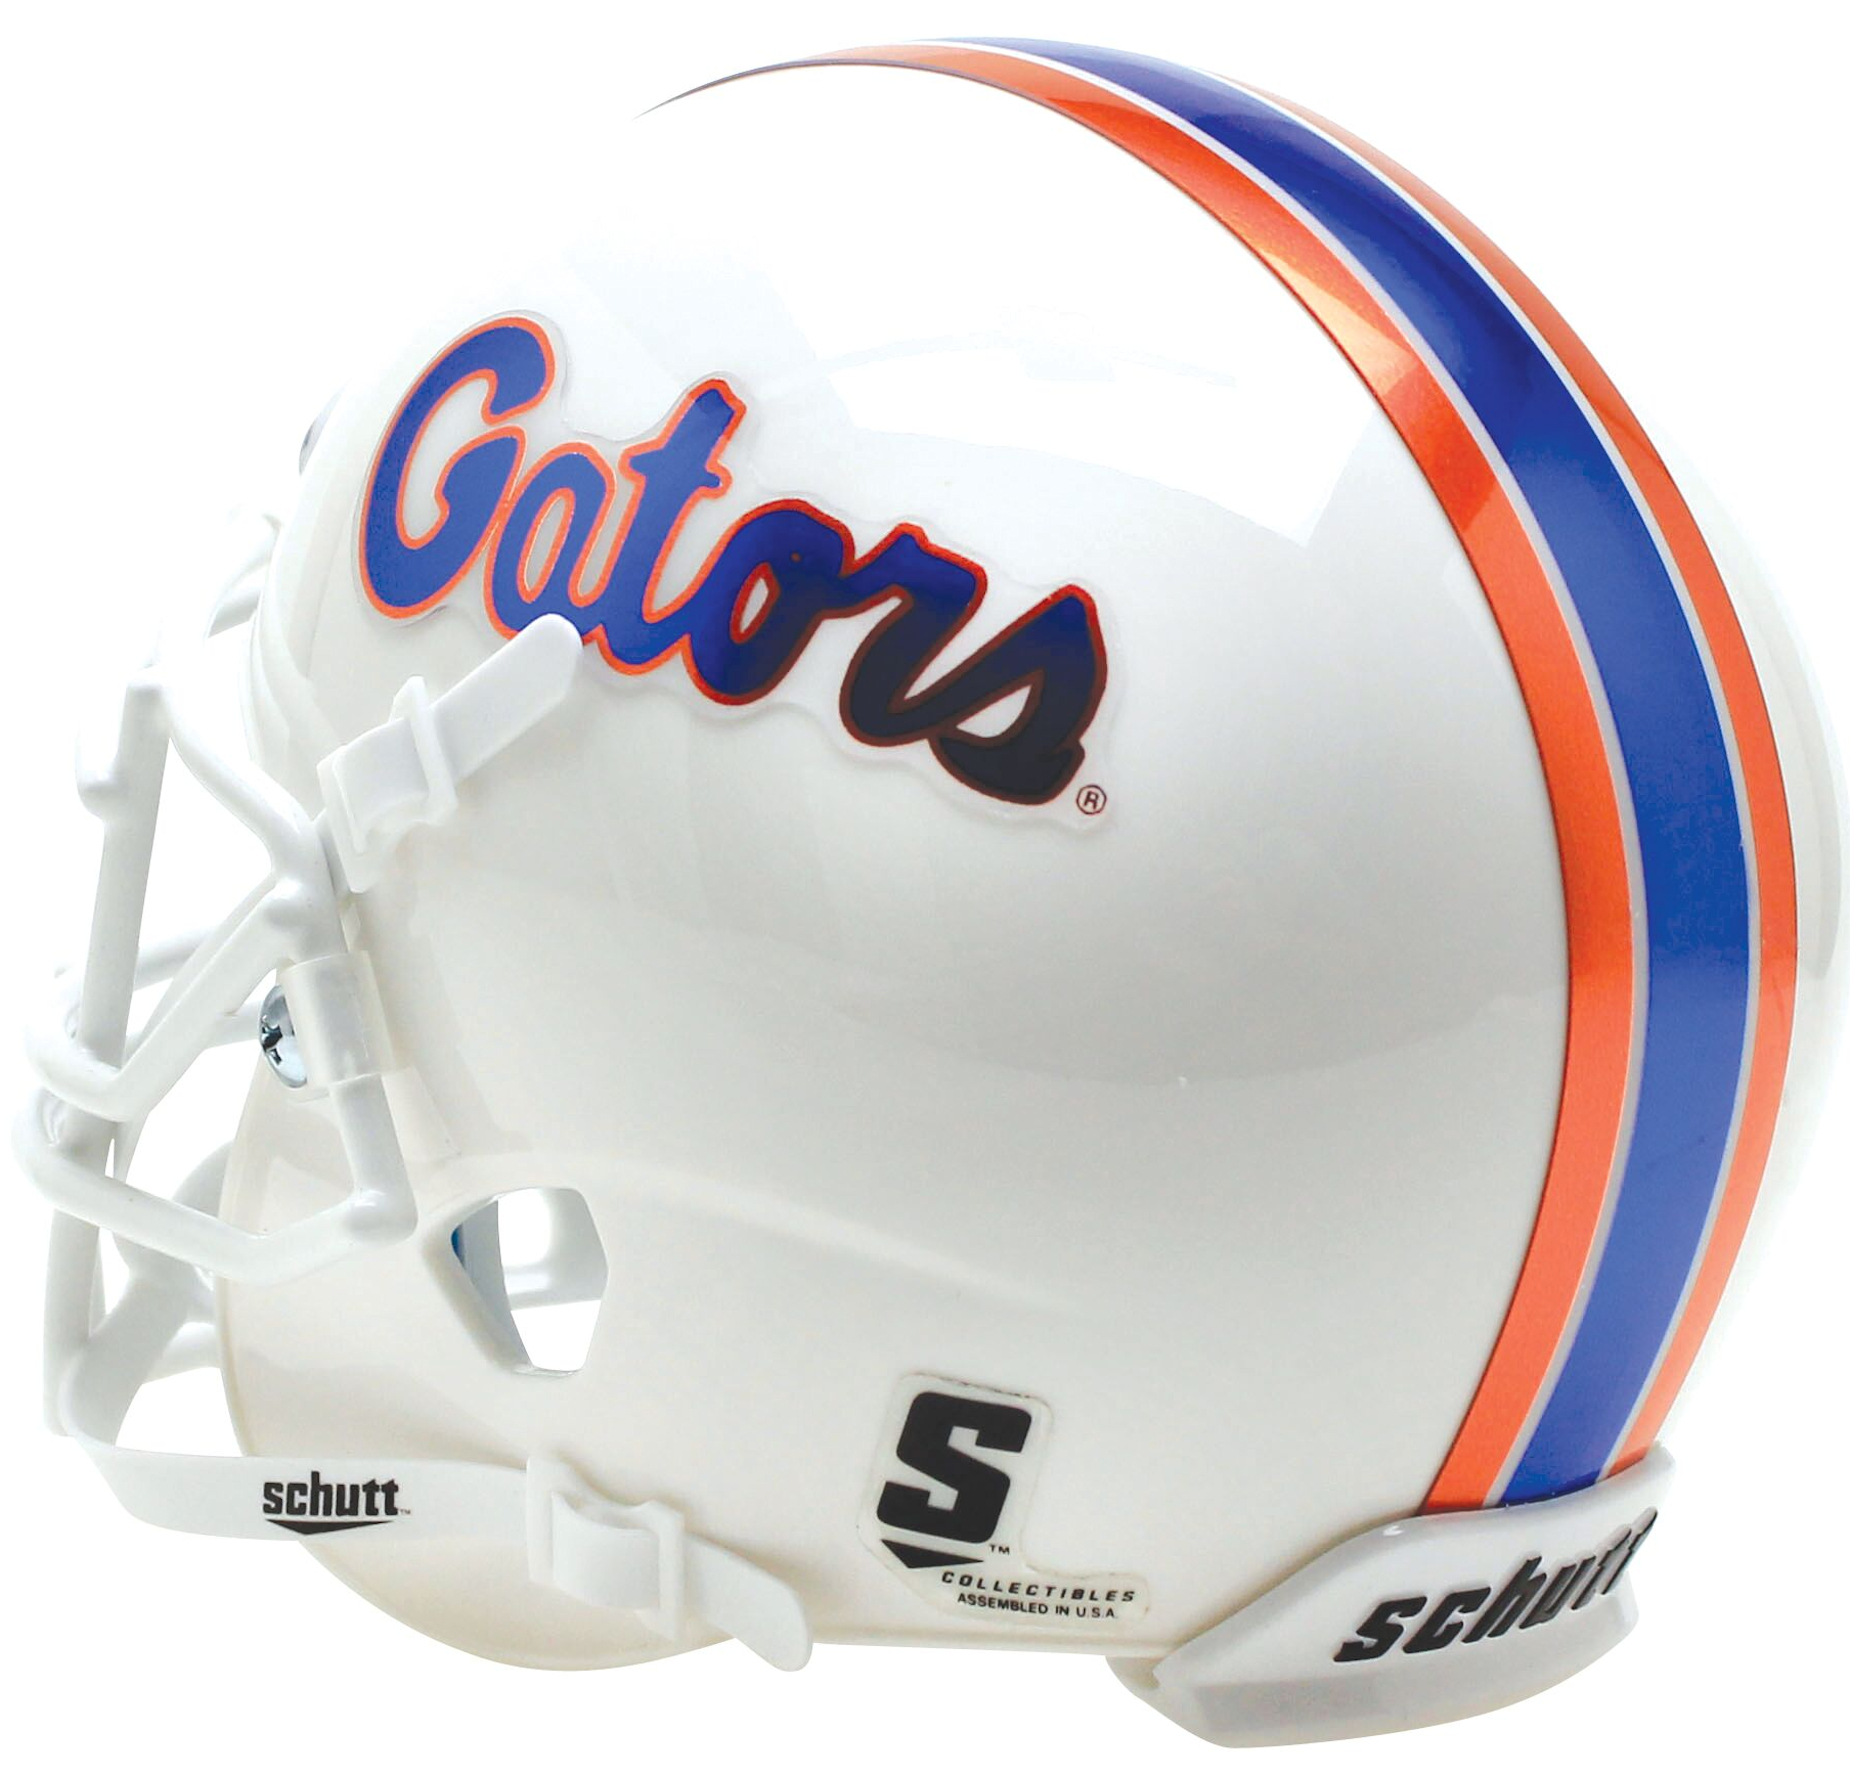 Florida Gators Full XP Replica Football Helmet Schutt <B>White Chrome Decal</B>